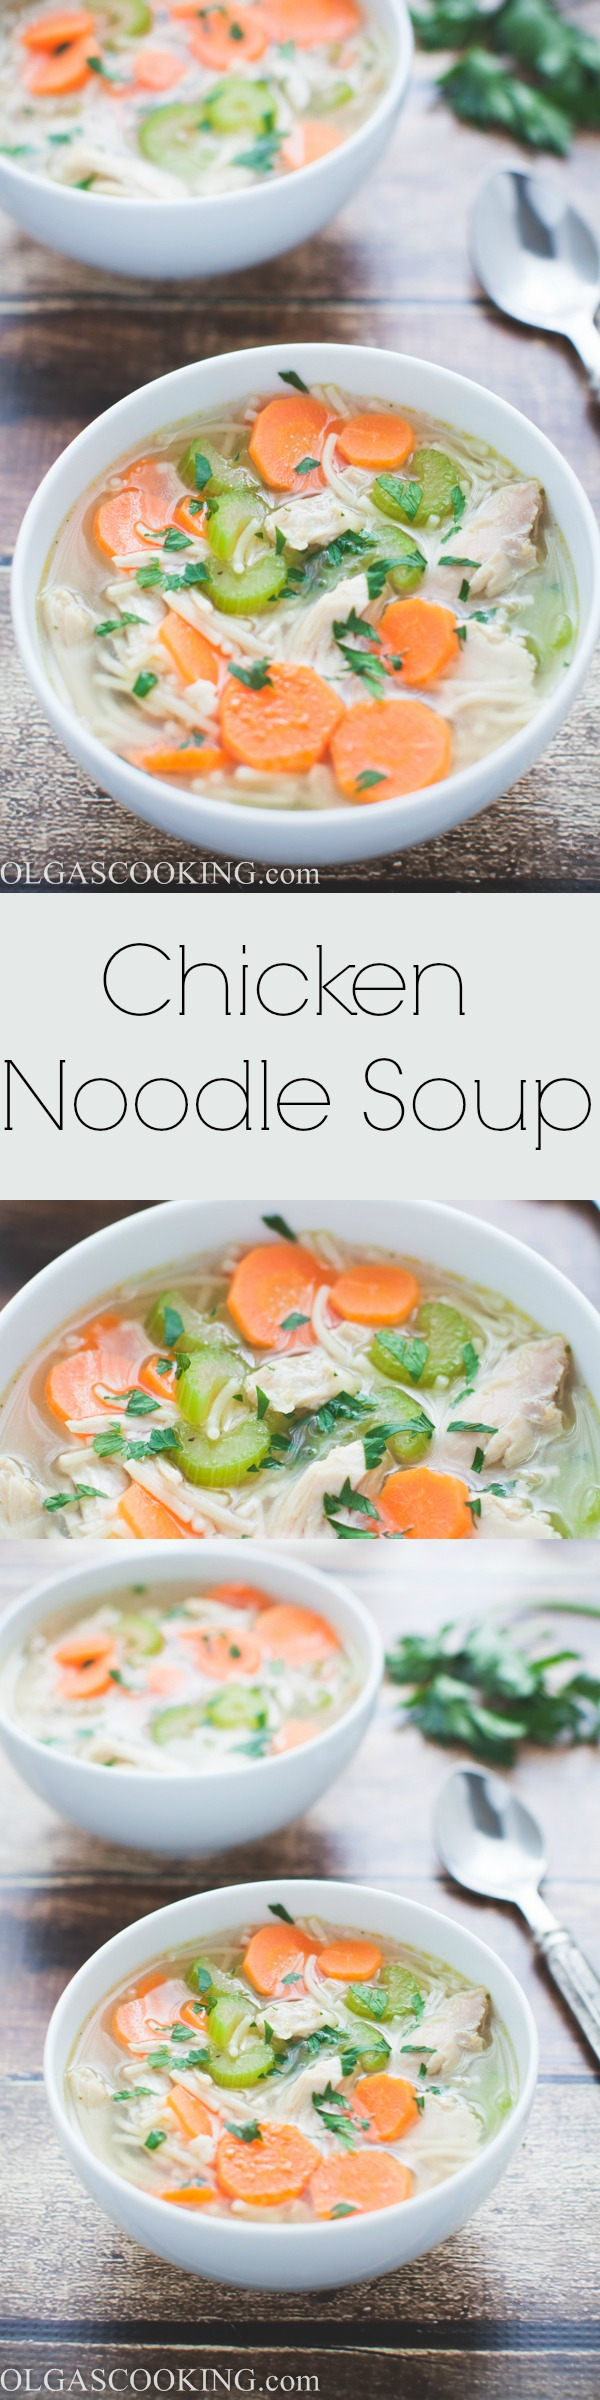 Chicken Noodle Soup is perfect for any day and this soup is ready in no time...like under 30 minutes-no-time!